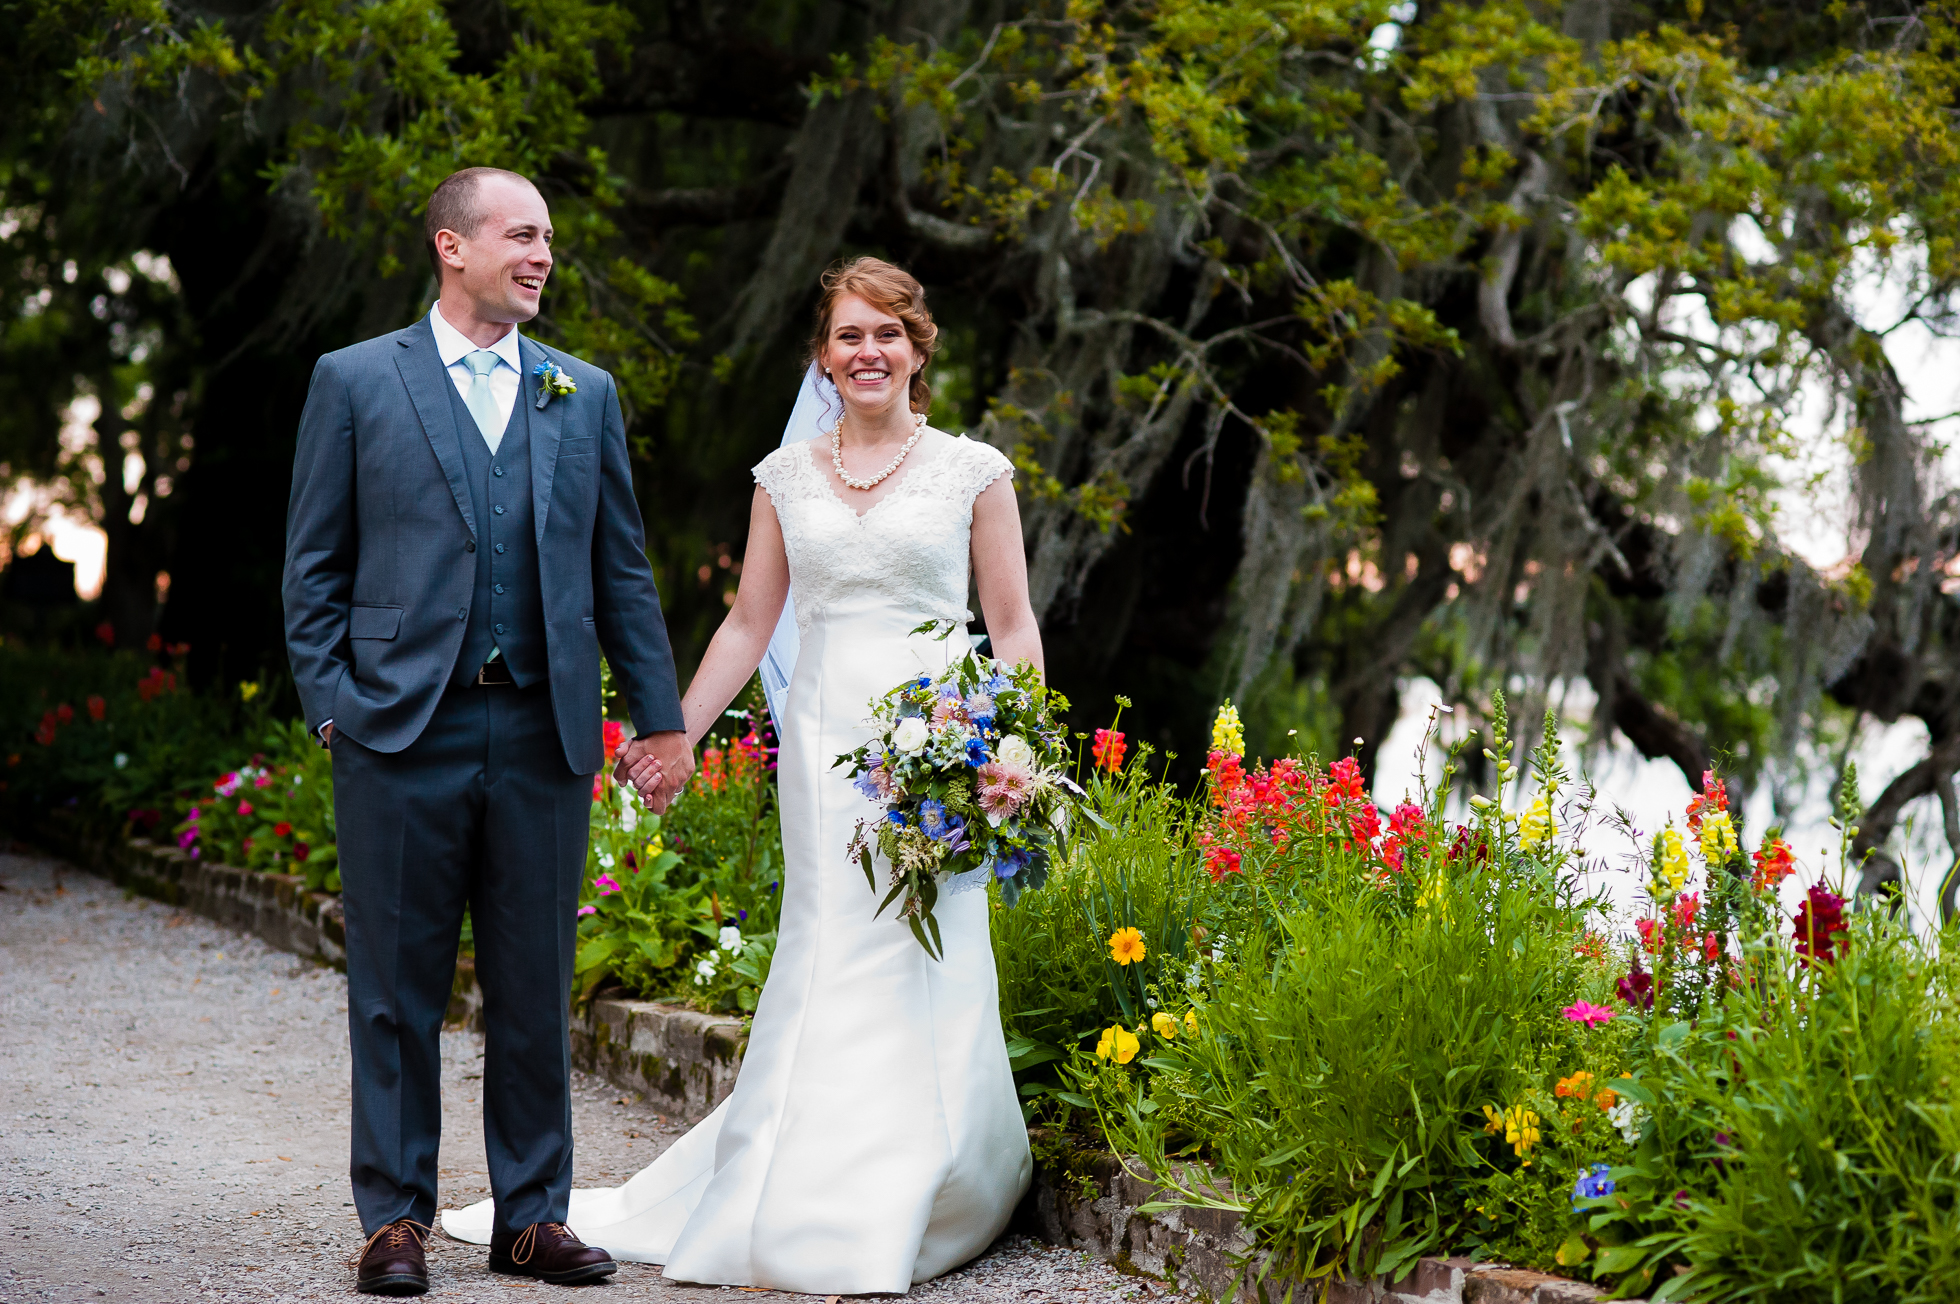 bride and groom holding hands in the gardens at Magnolia plantation on their wedding day